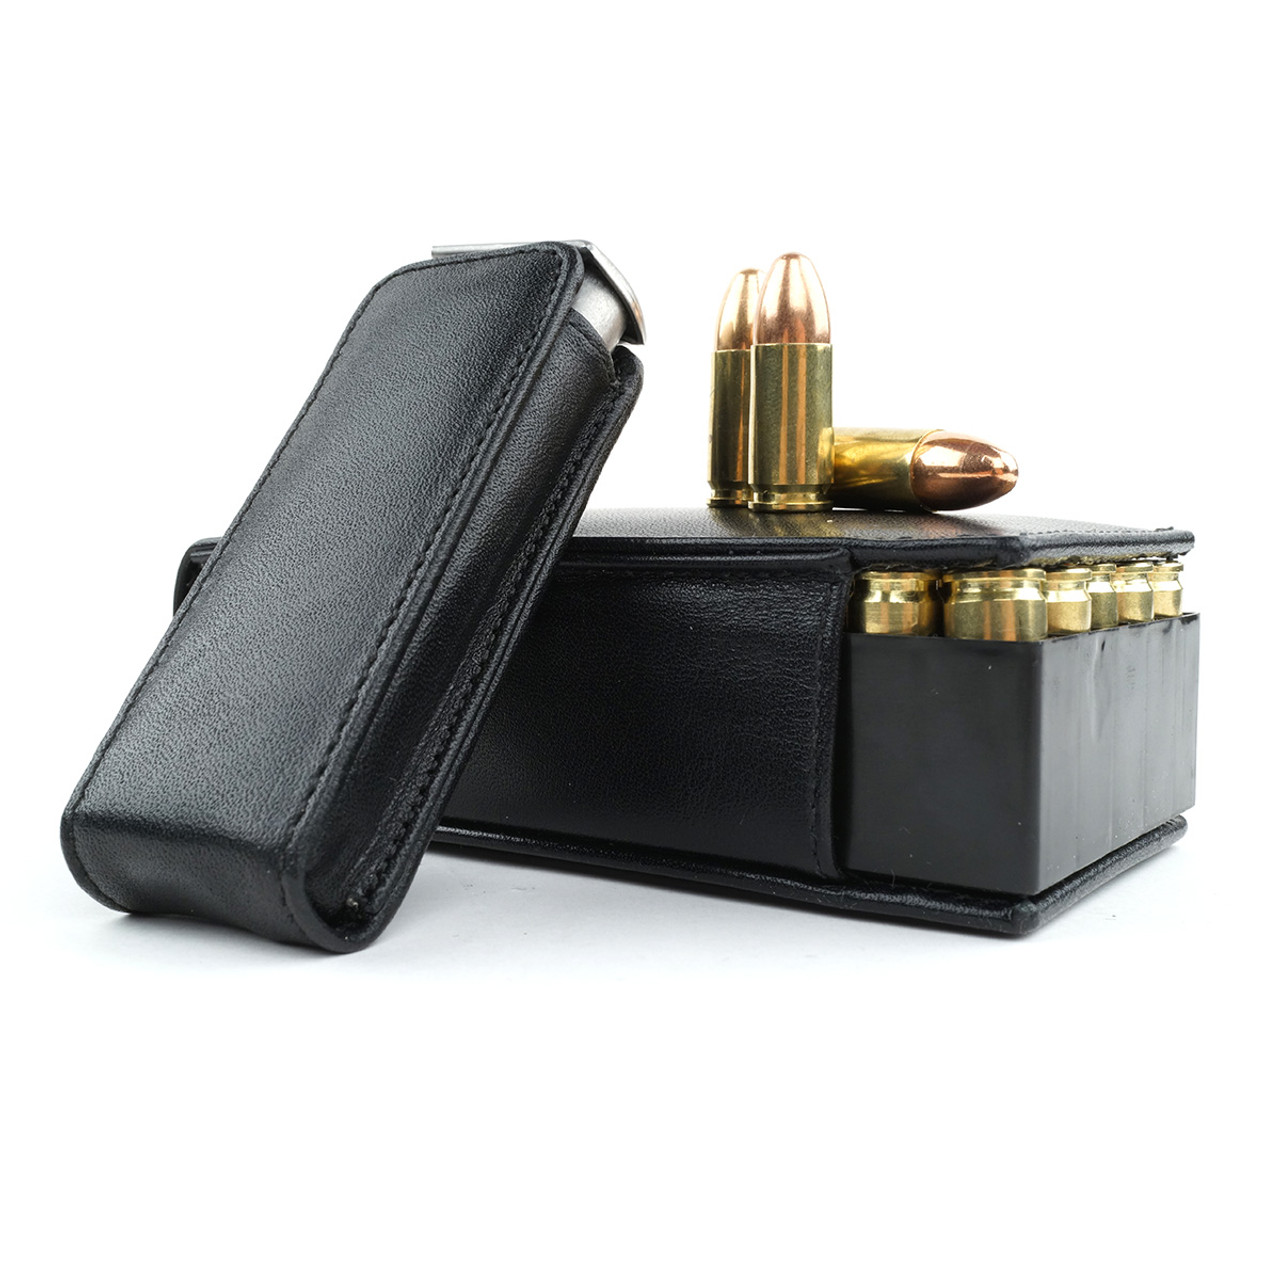 Glock 43 Leather Bullet Brick